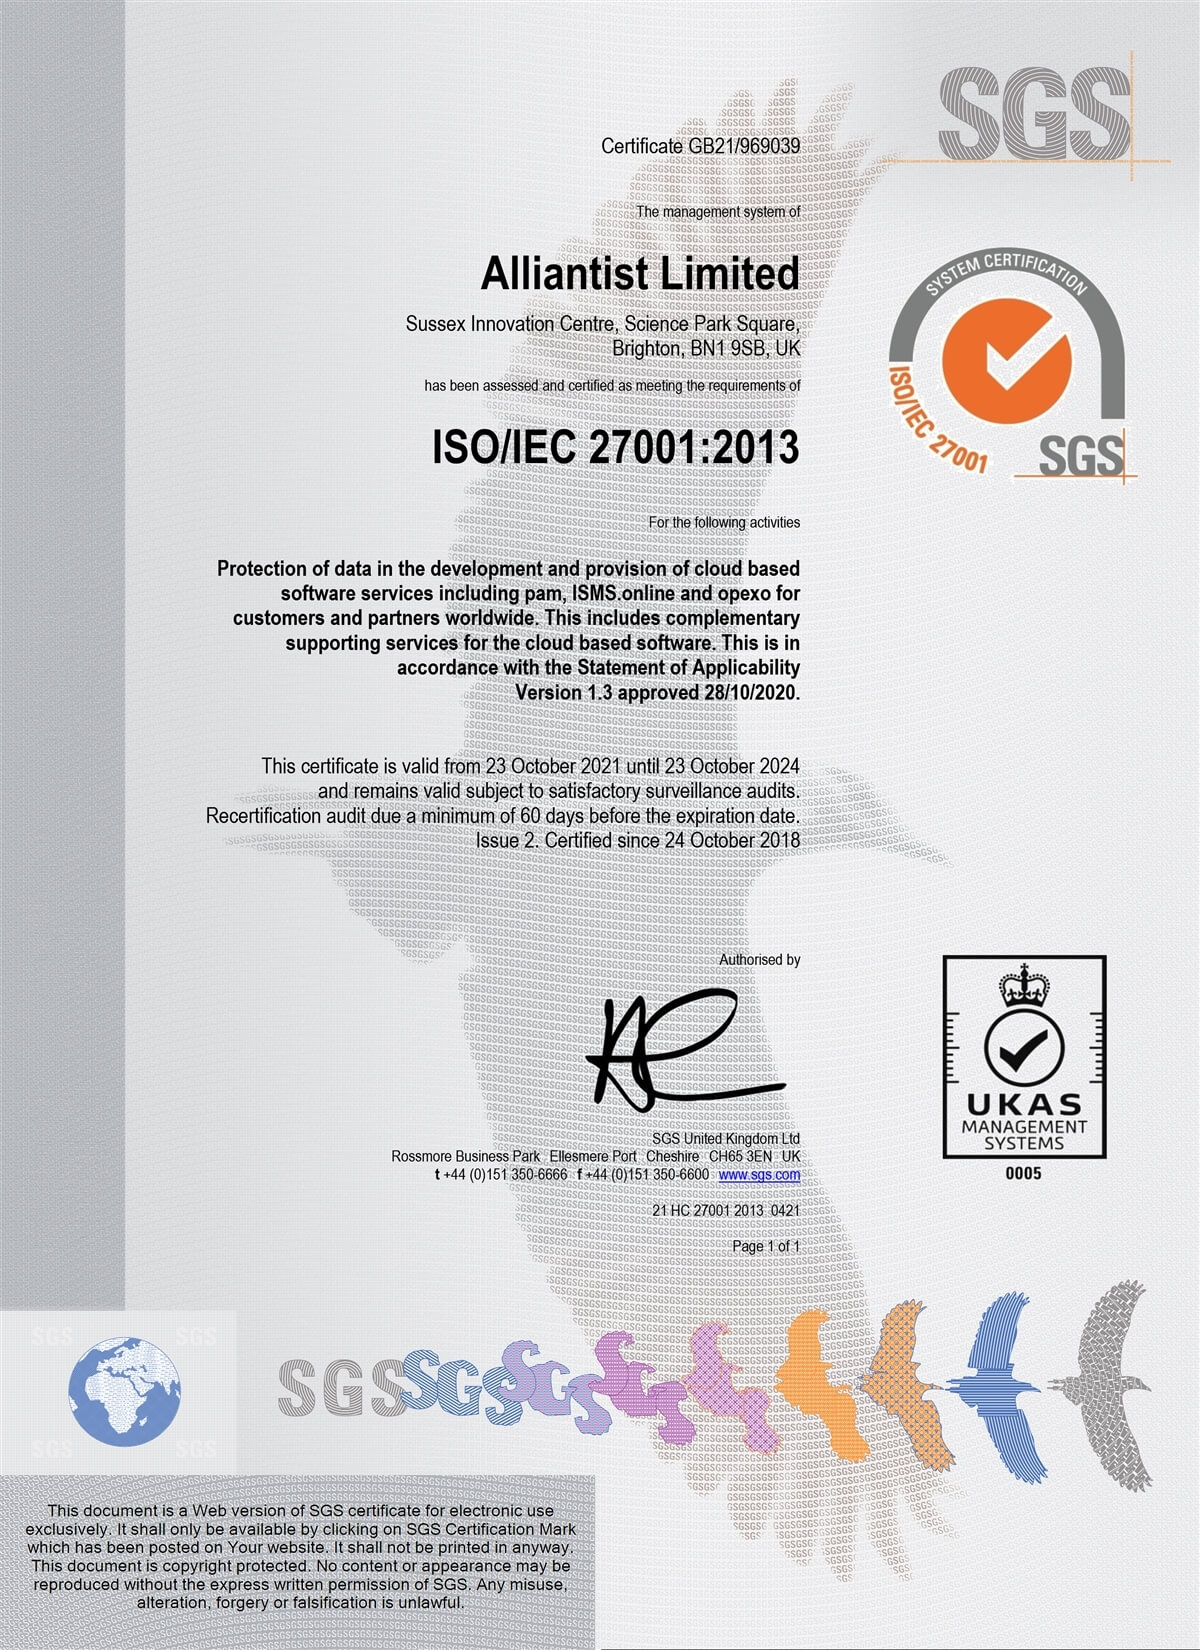 Our ISO 27001 certificate